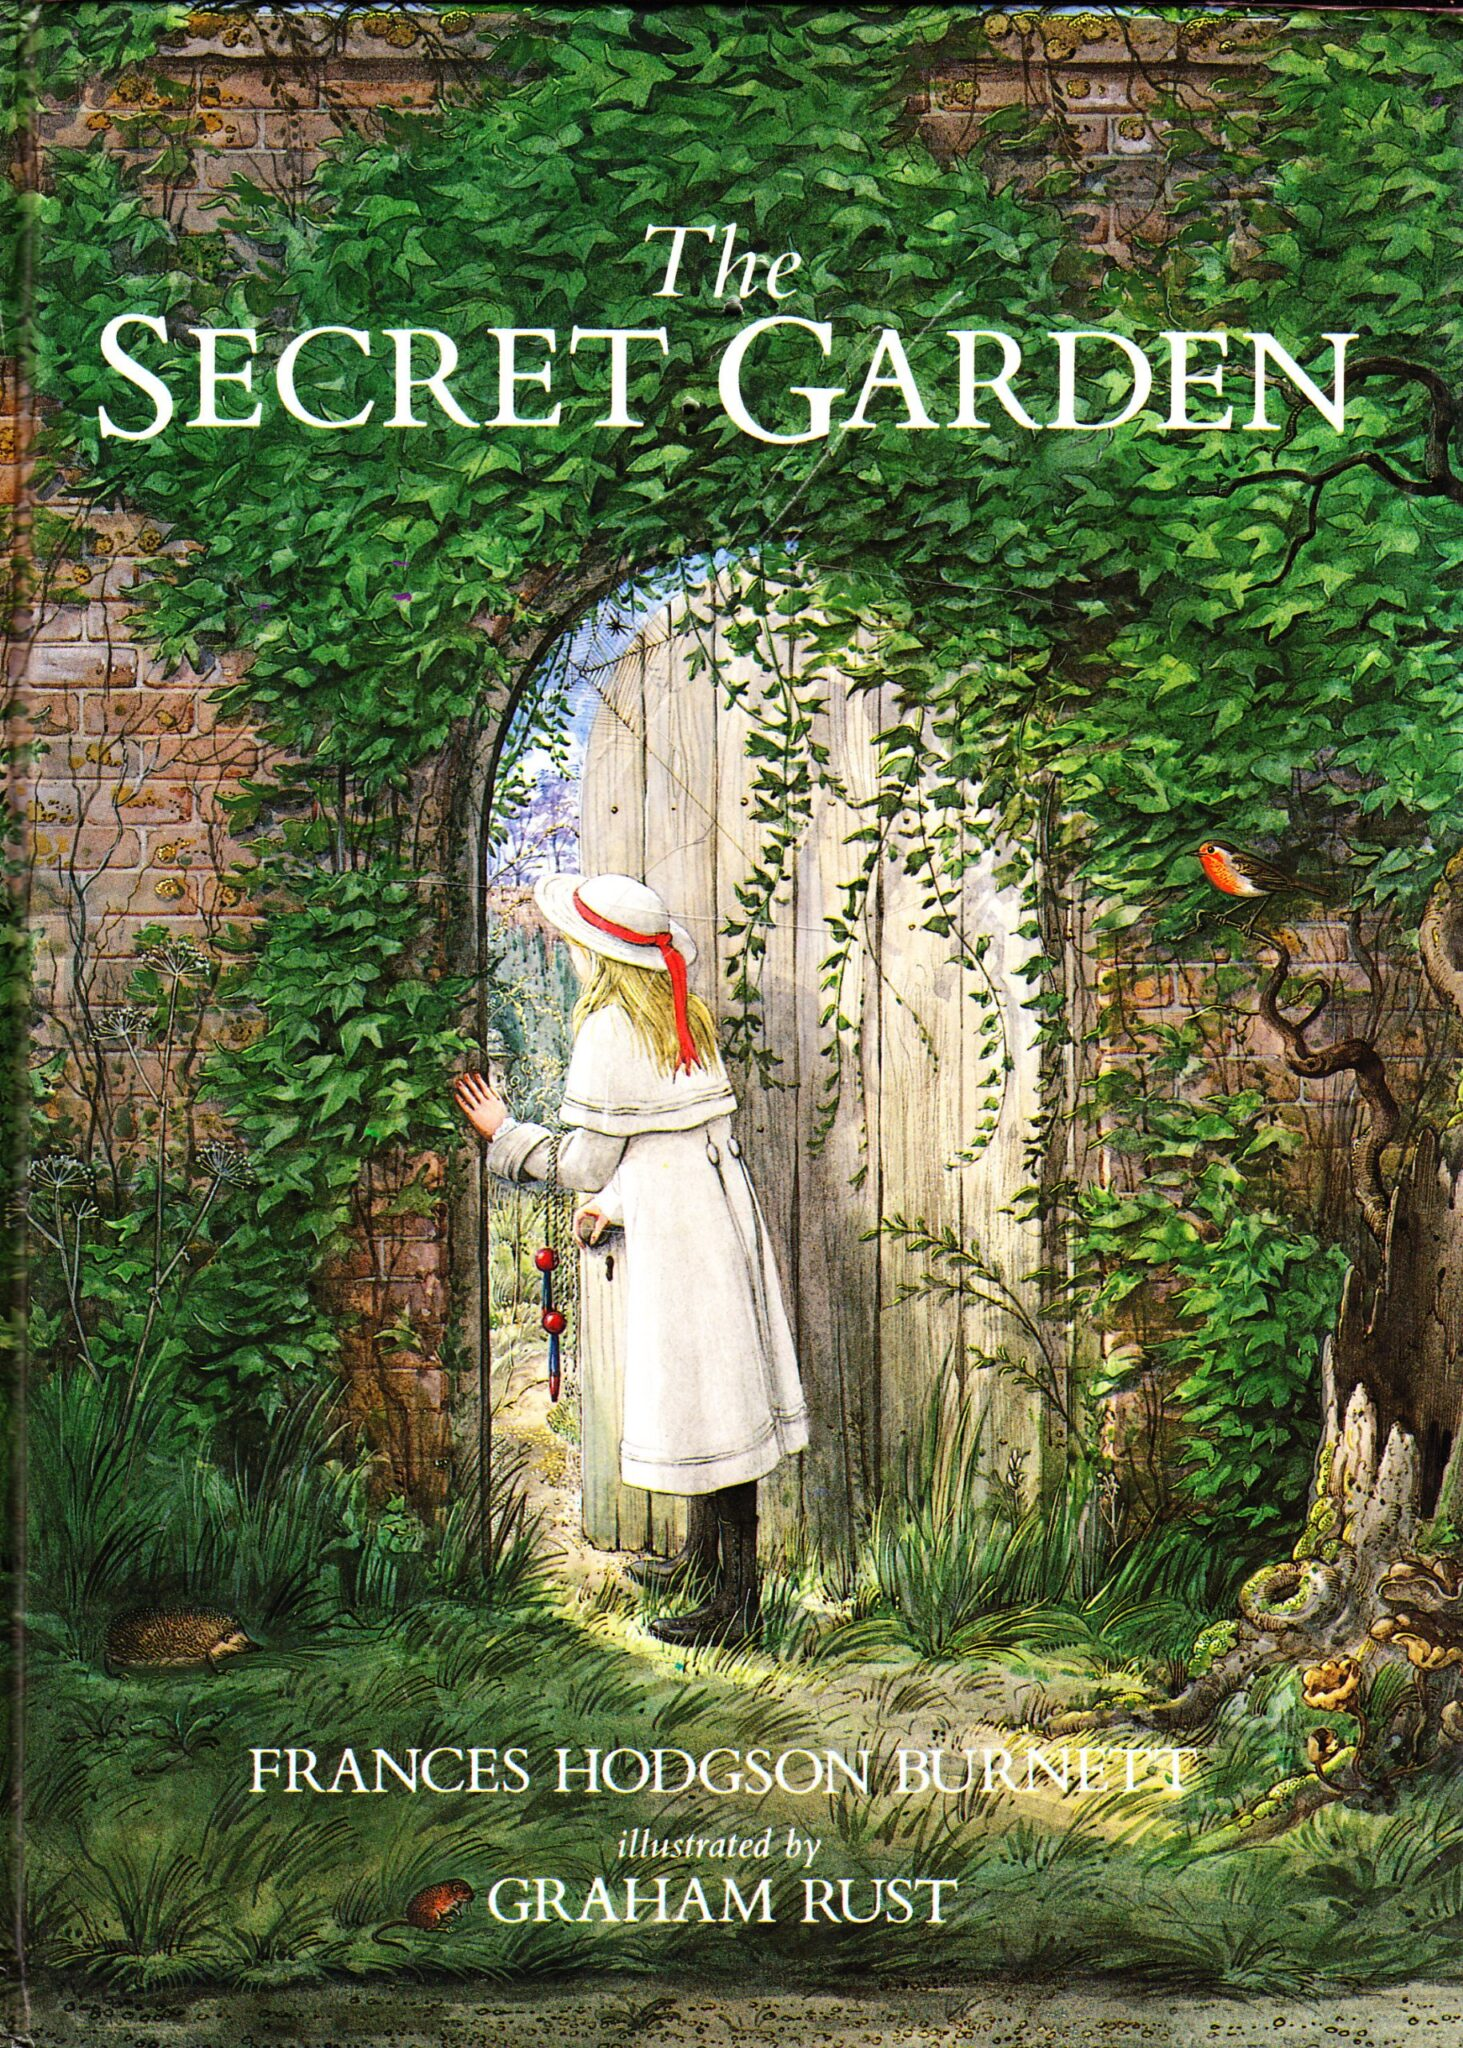 The Secret Garden illustrated by Graham Rust | beautifulbooks.info